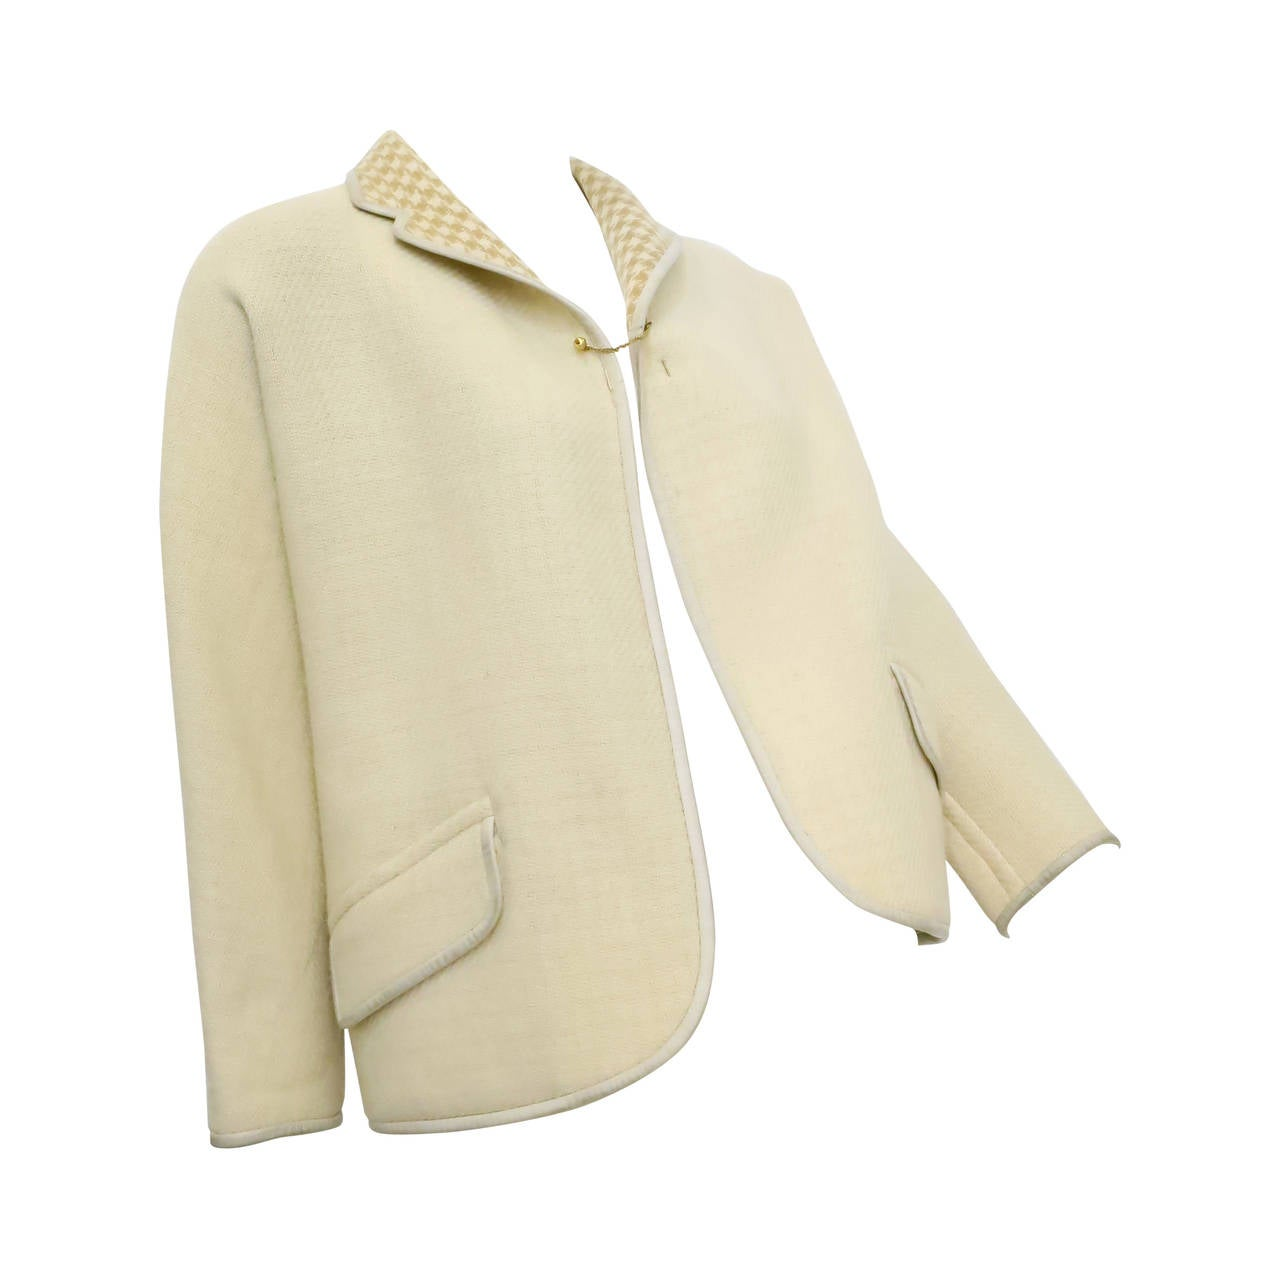 1960s Bonnie Cashin Cream and Houndstooth Wool Jacket with Gold Chain Closure